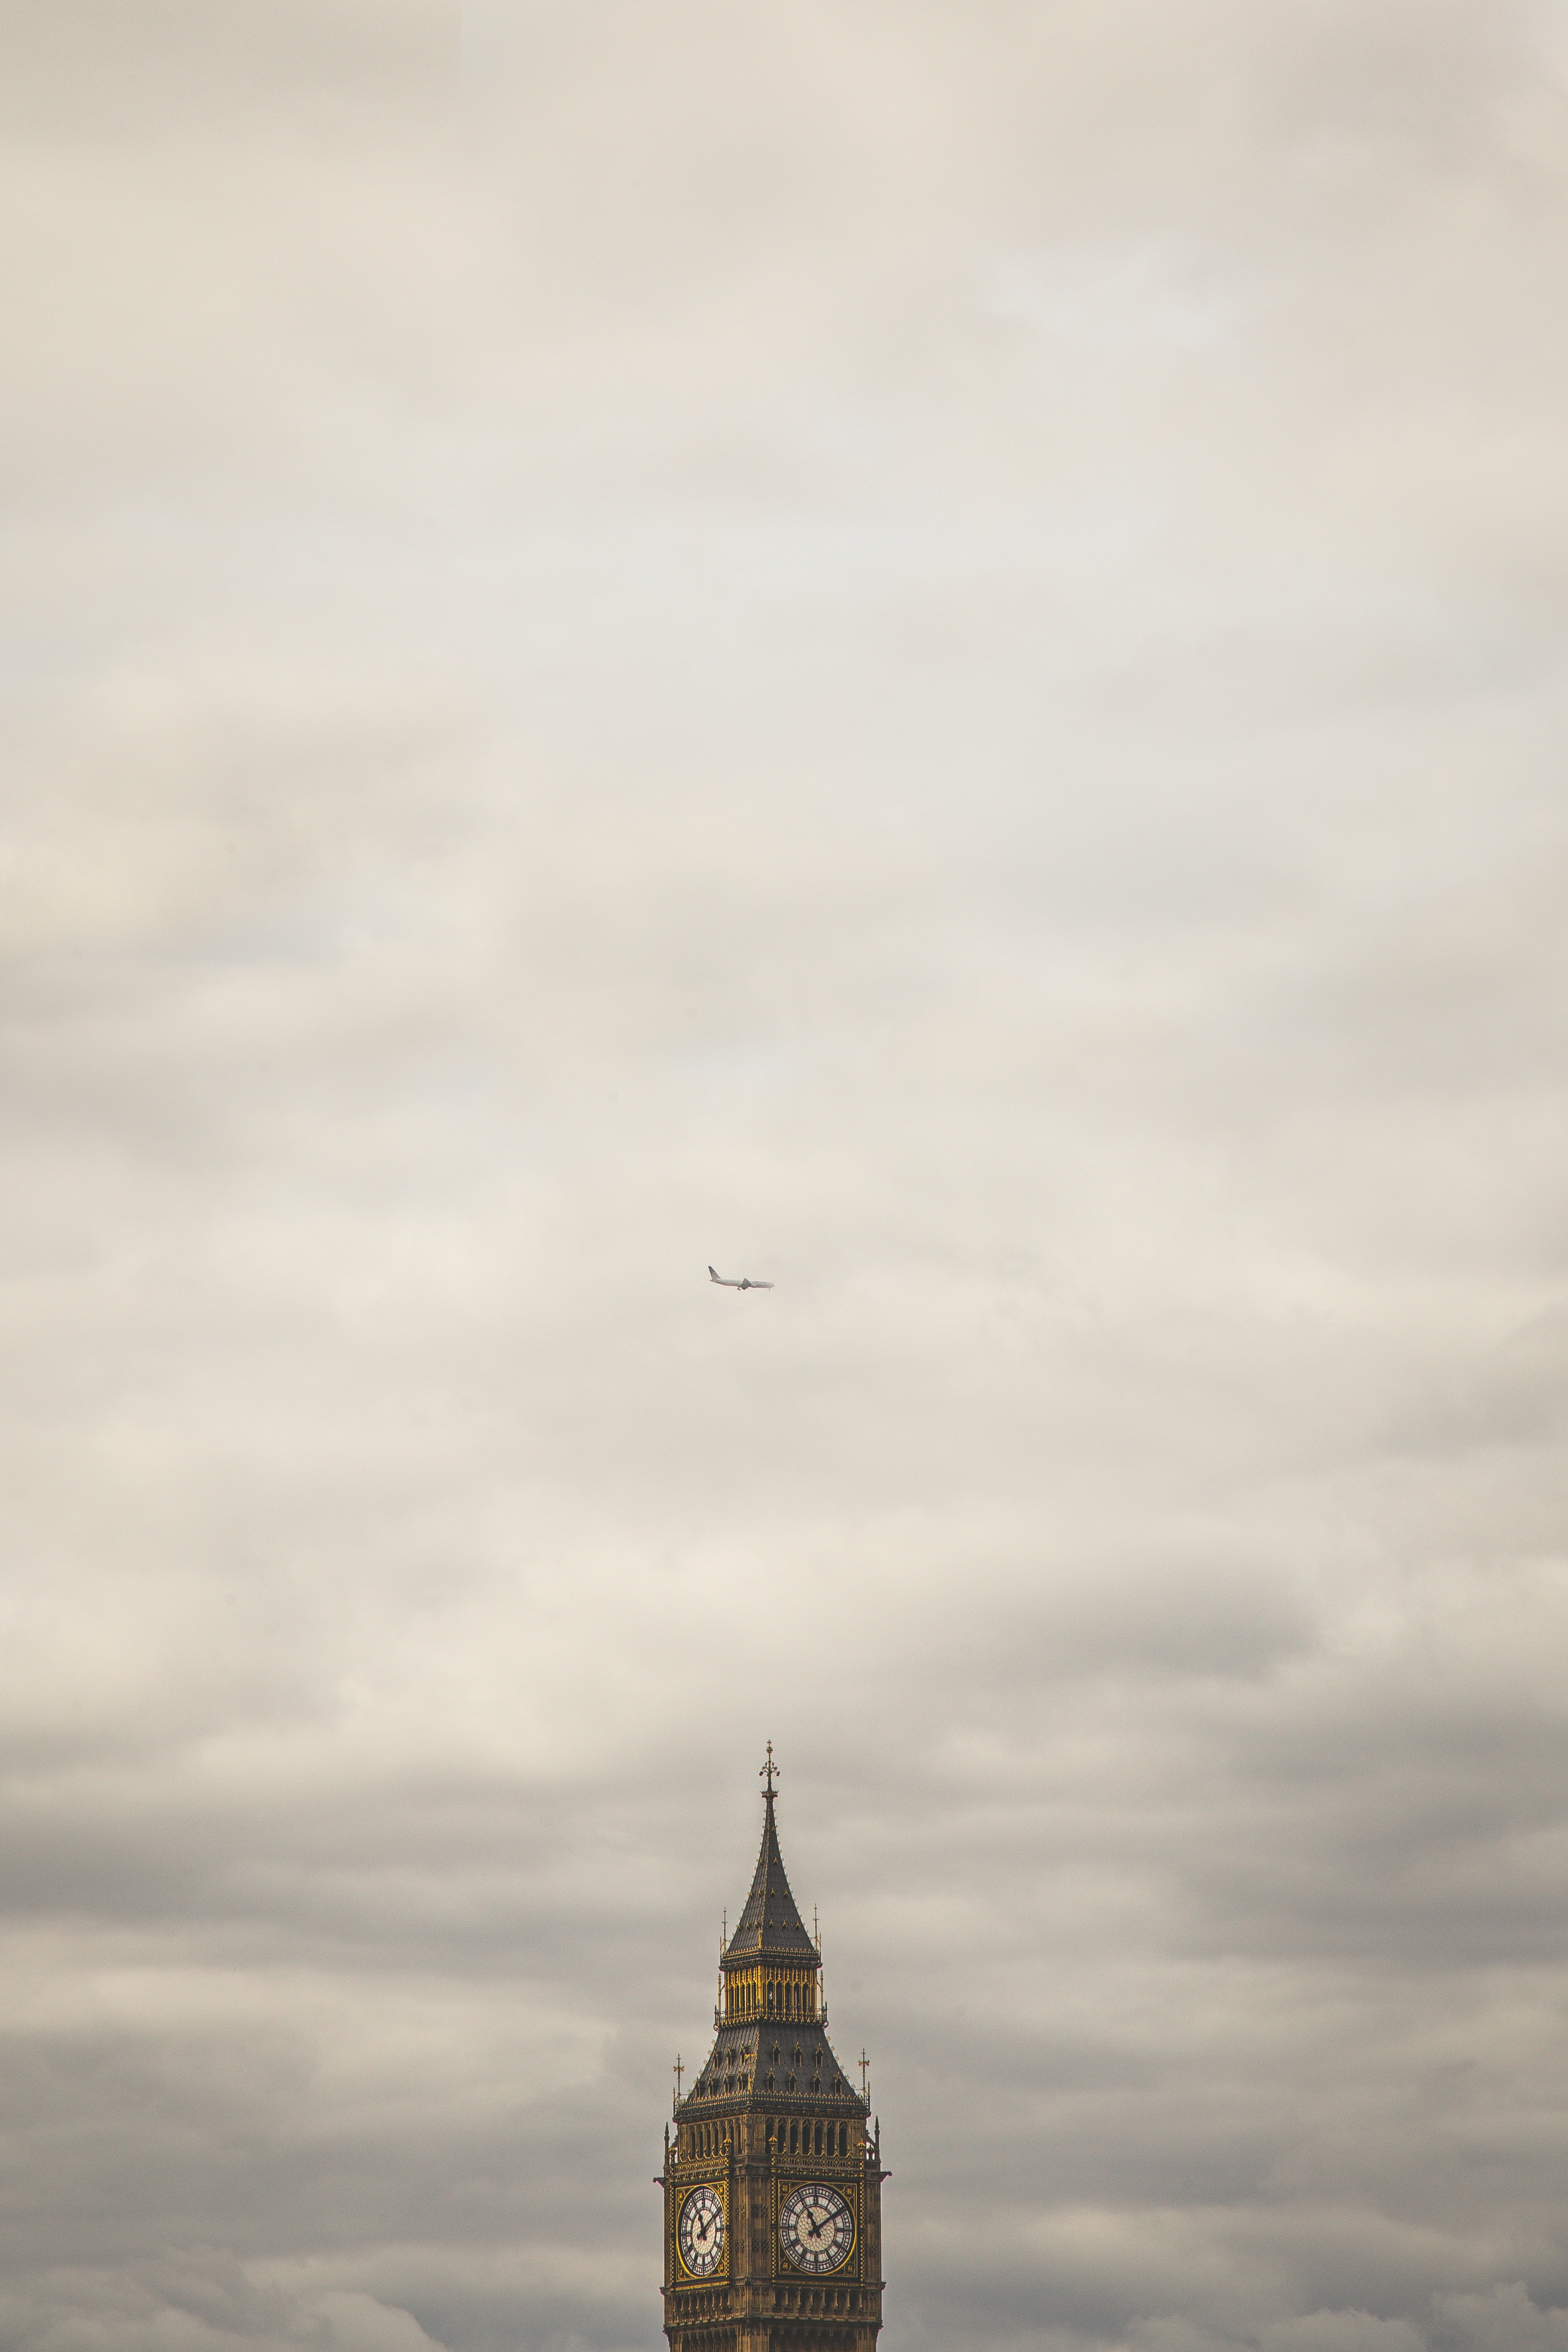 A plane in the sky above the Big Ben clock tower in London